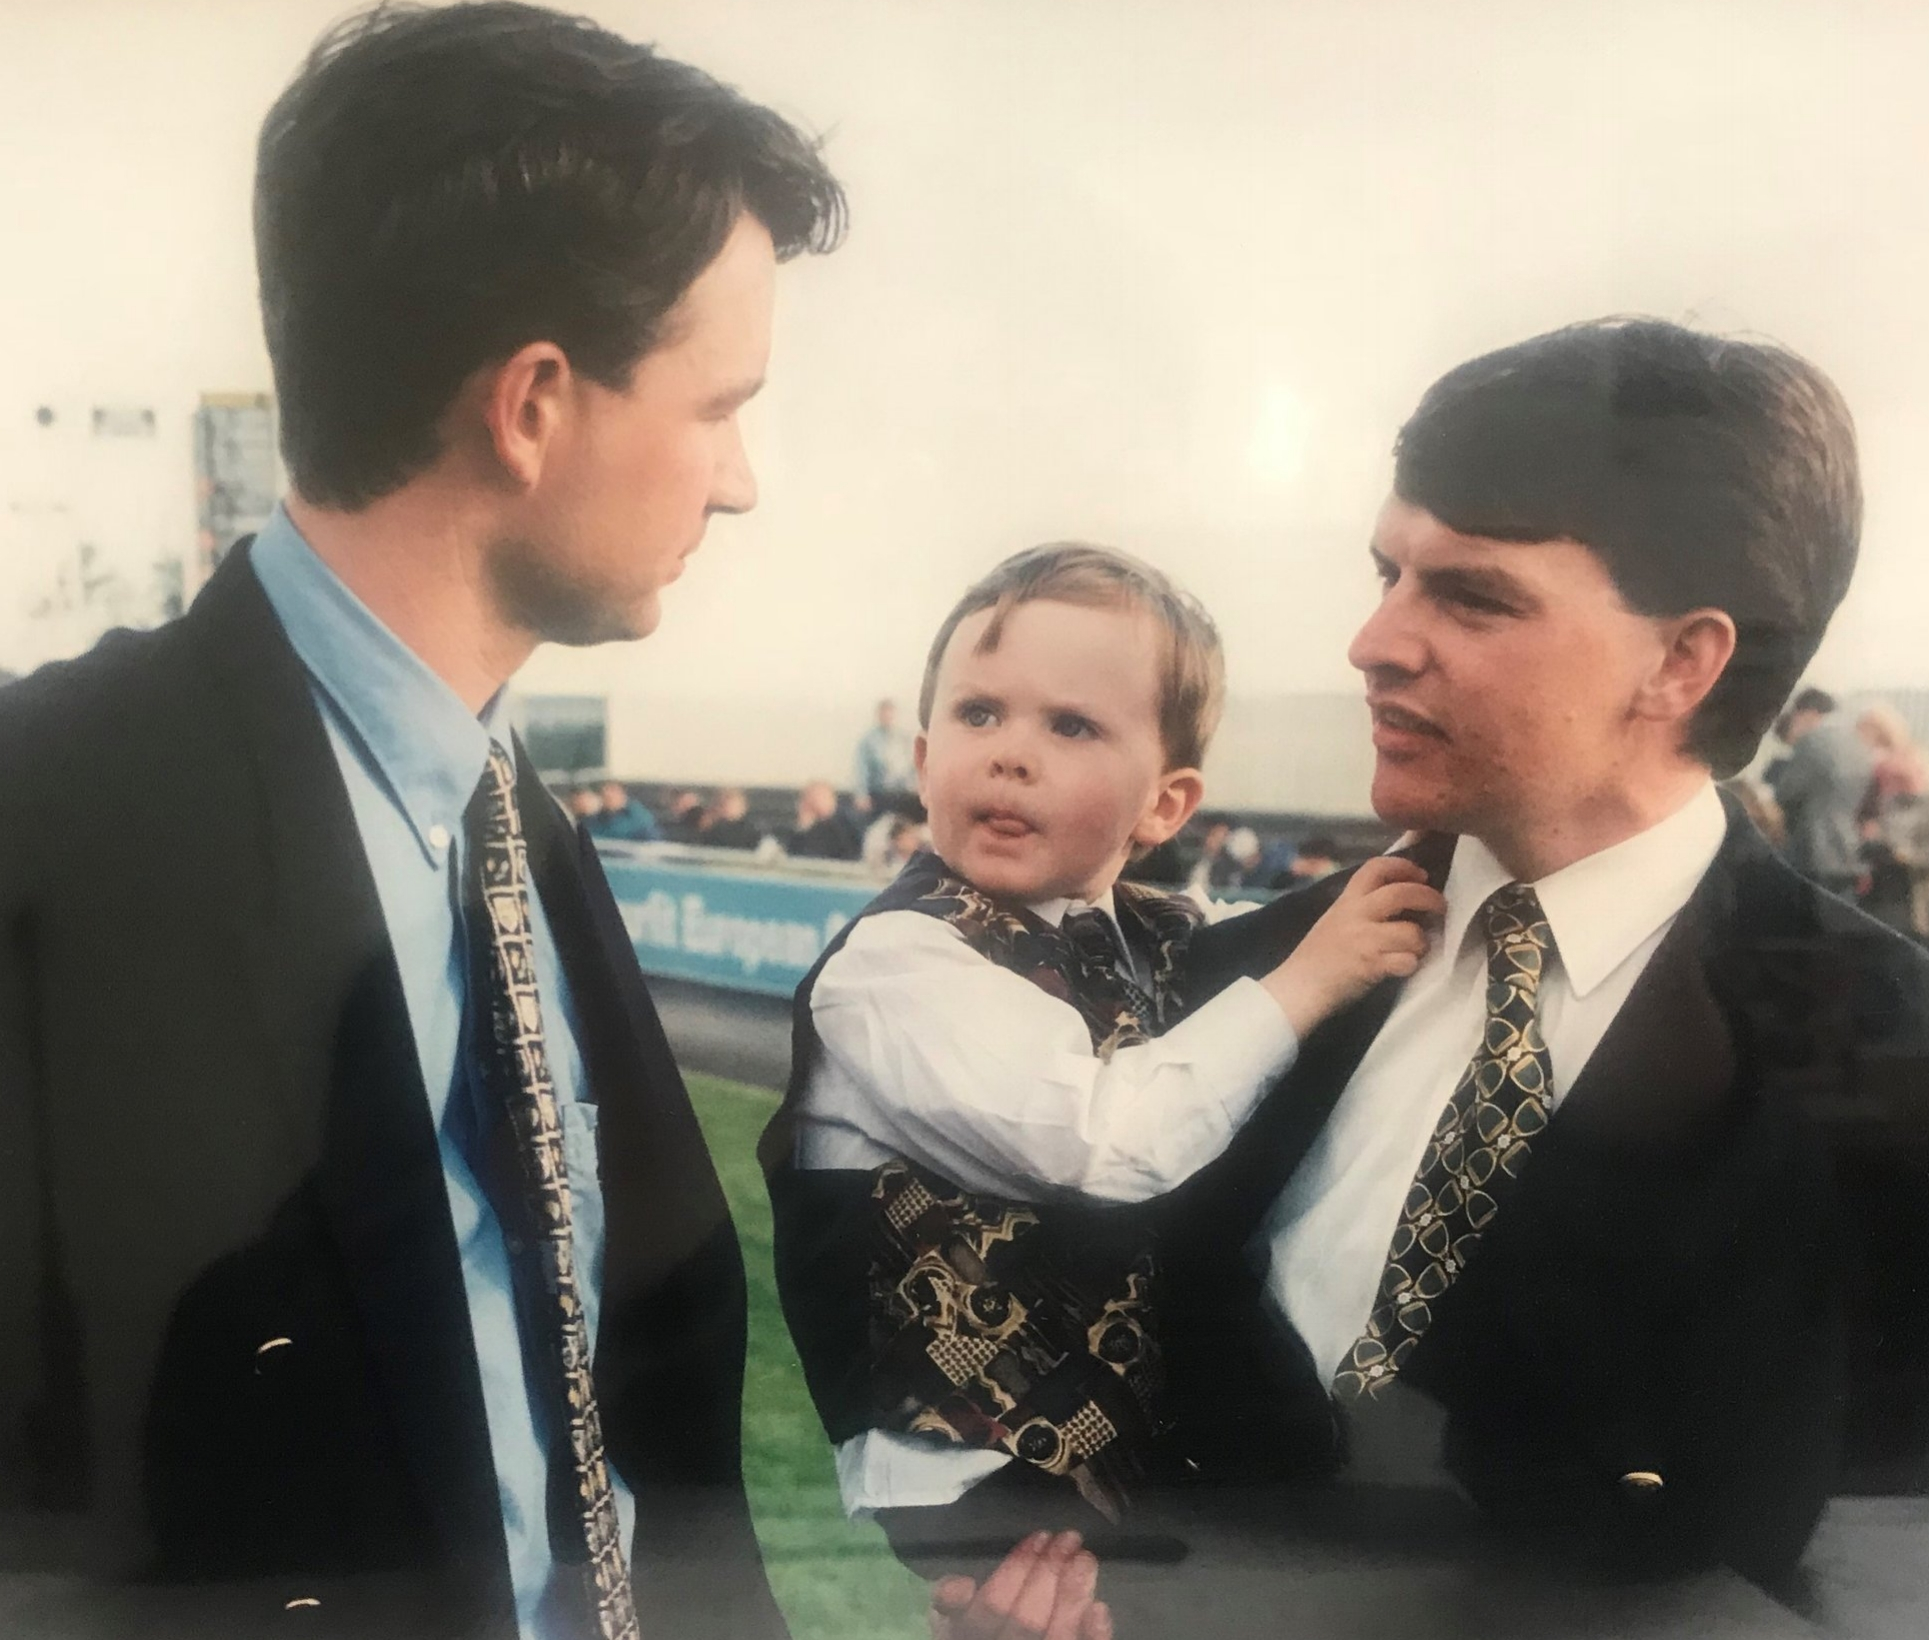 Matthew with Aidan O'Brien at the Curragh in 1996. Who would have dreamed Aidan's young son Joseph would achieve a unique racing double. He rode the winner of the 2012 English Derby, Camelot and trained Rekindling to win last years Melbourne Cup.